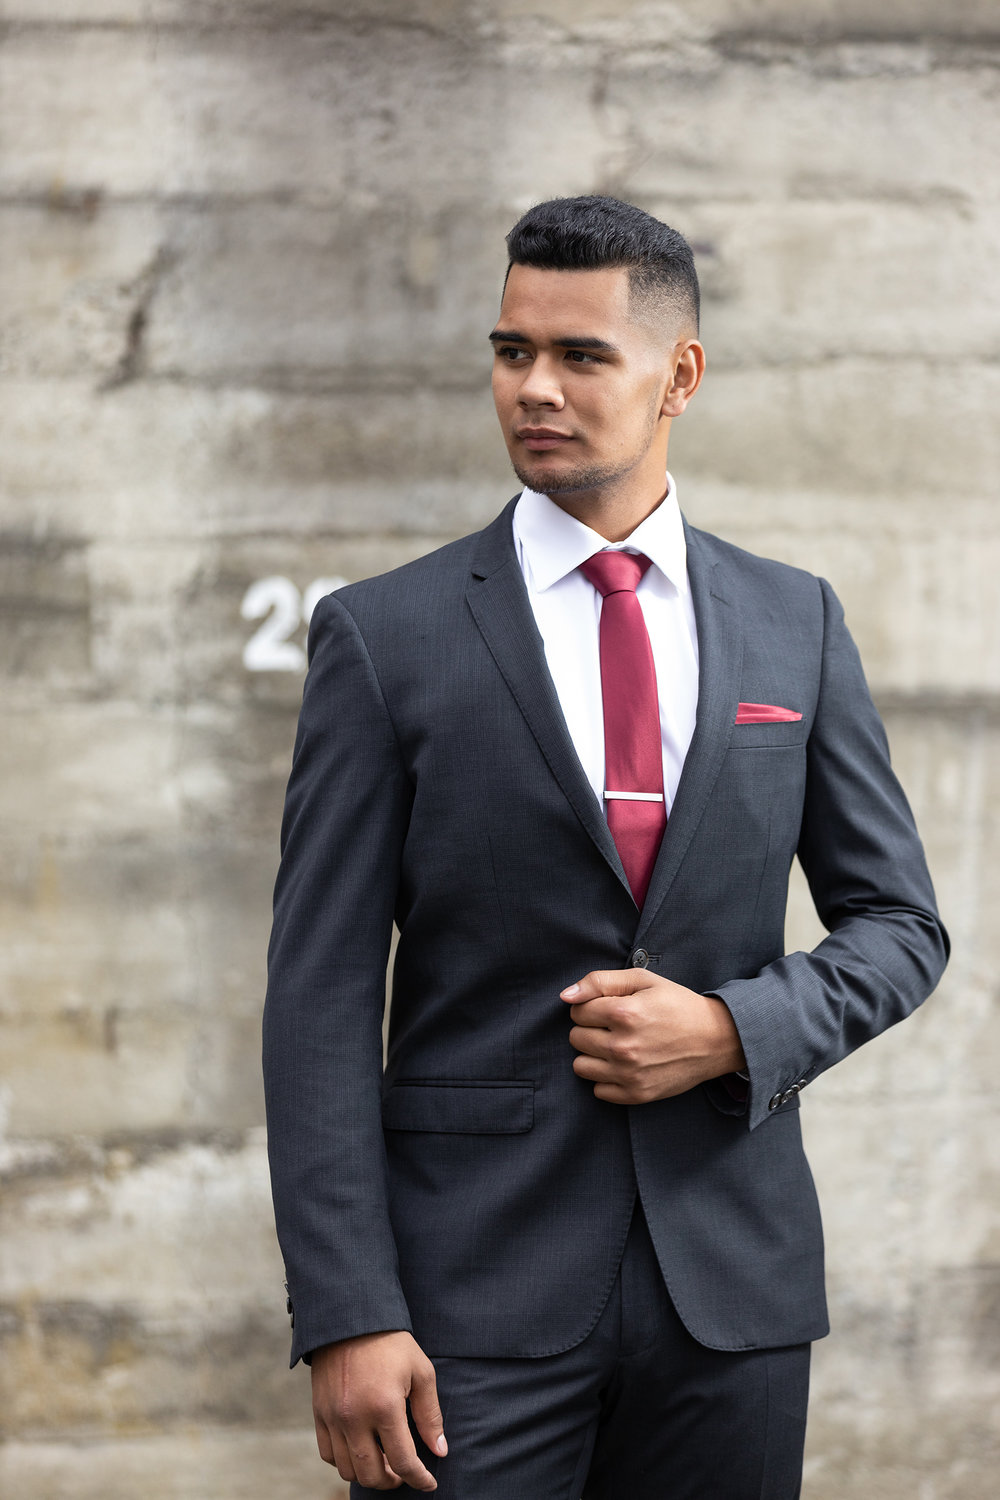 Charcoal - Slim Fit- Notch lapel- 2 button suit jacket- Tapered suit trouserHire price $120 NZDReg: 88—136Short: 88—120Tall: 88—120